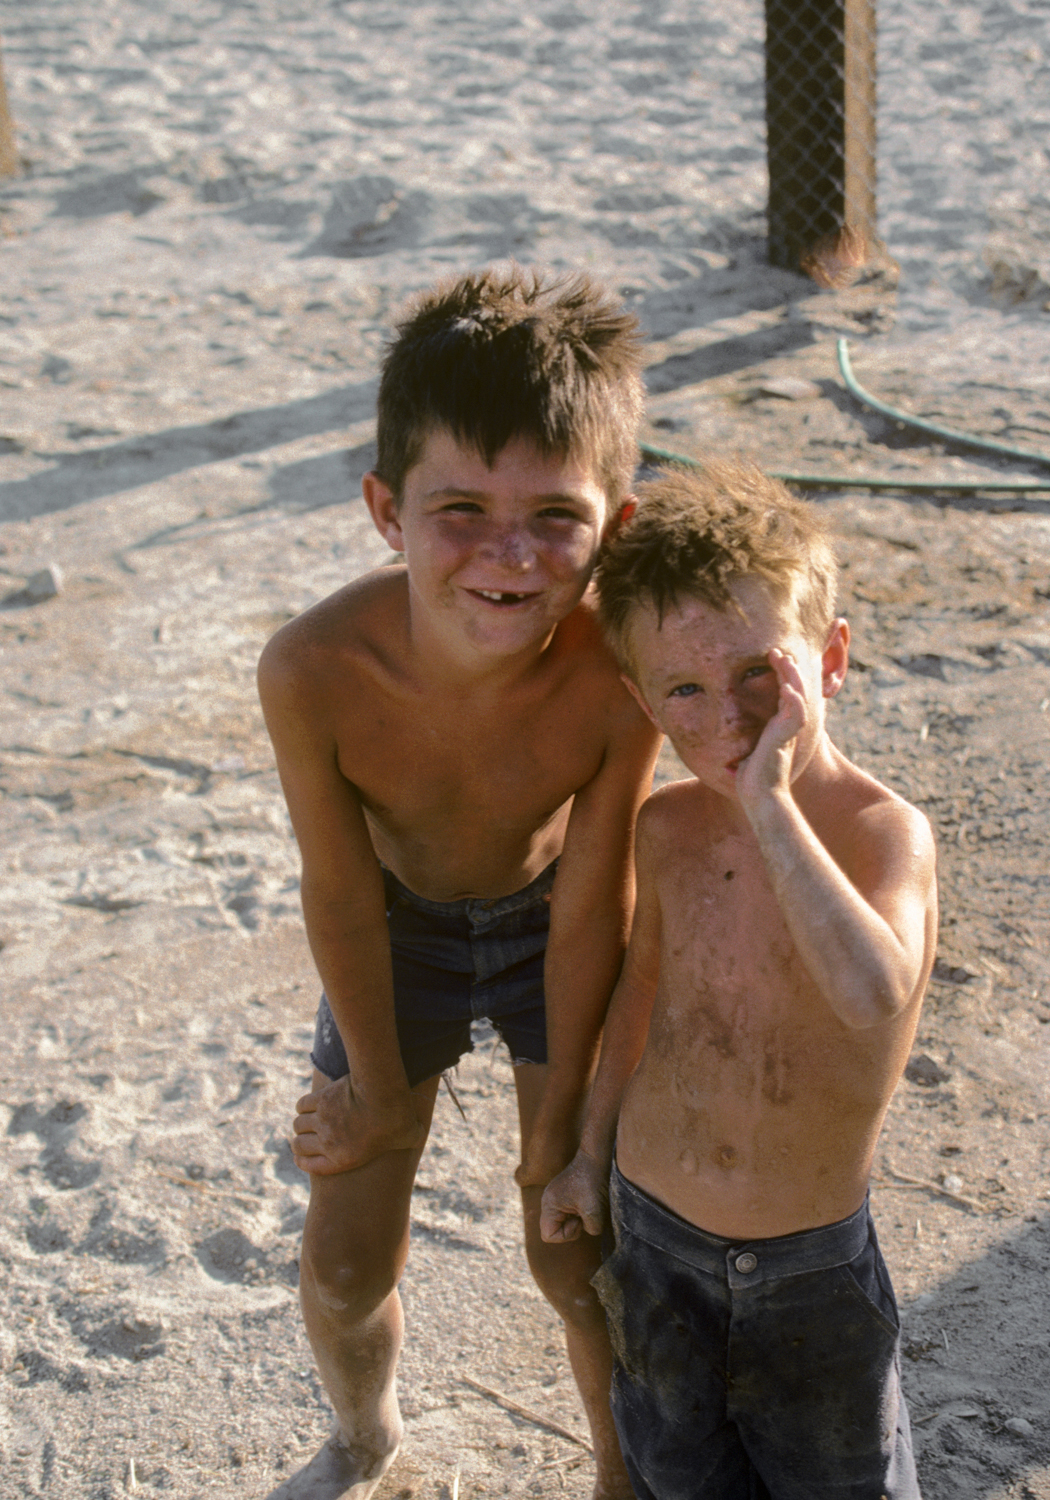 Gene's boys were tough, with bodies that were getting weathered. No shoes. No sunscreen. Like their dad.